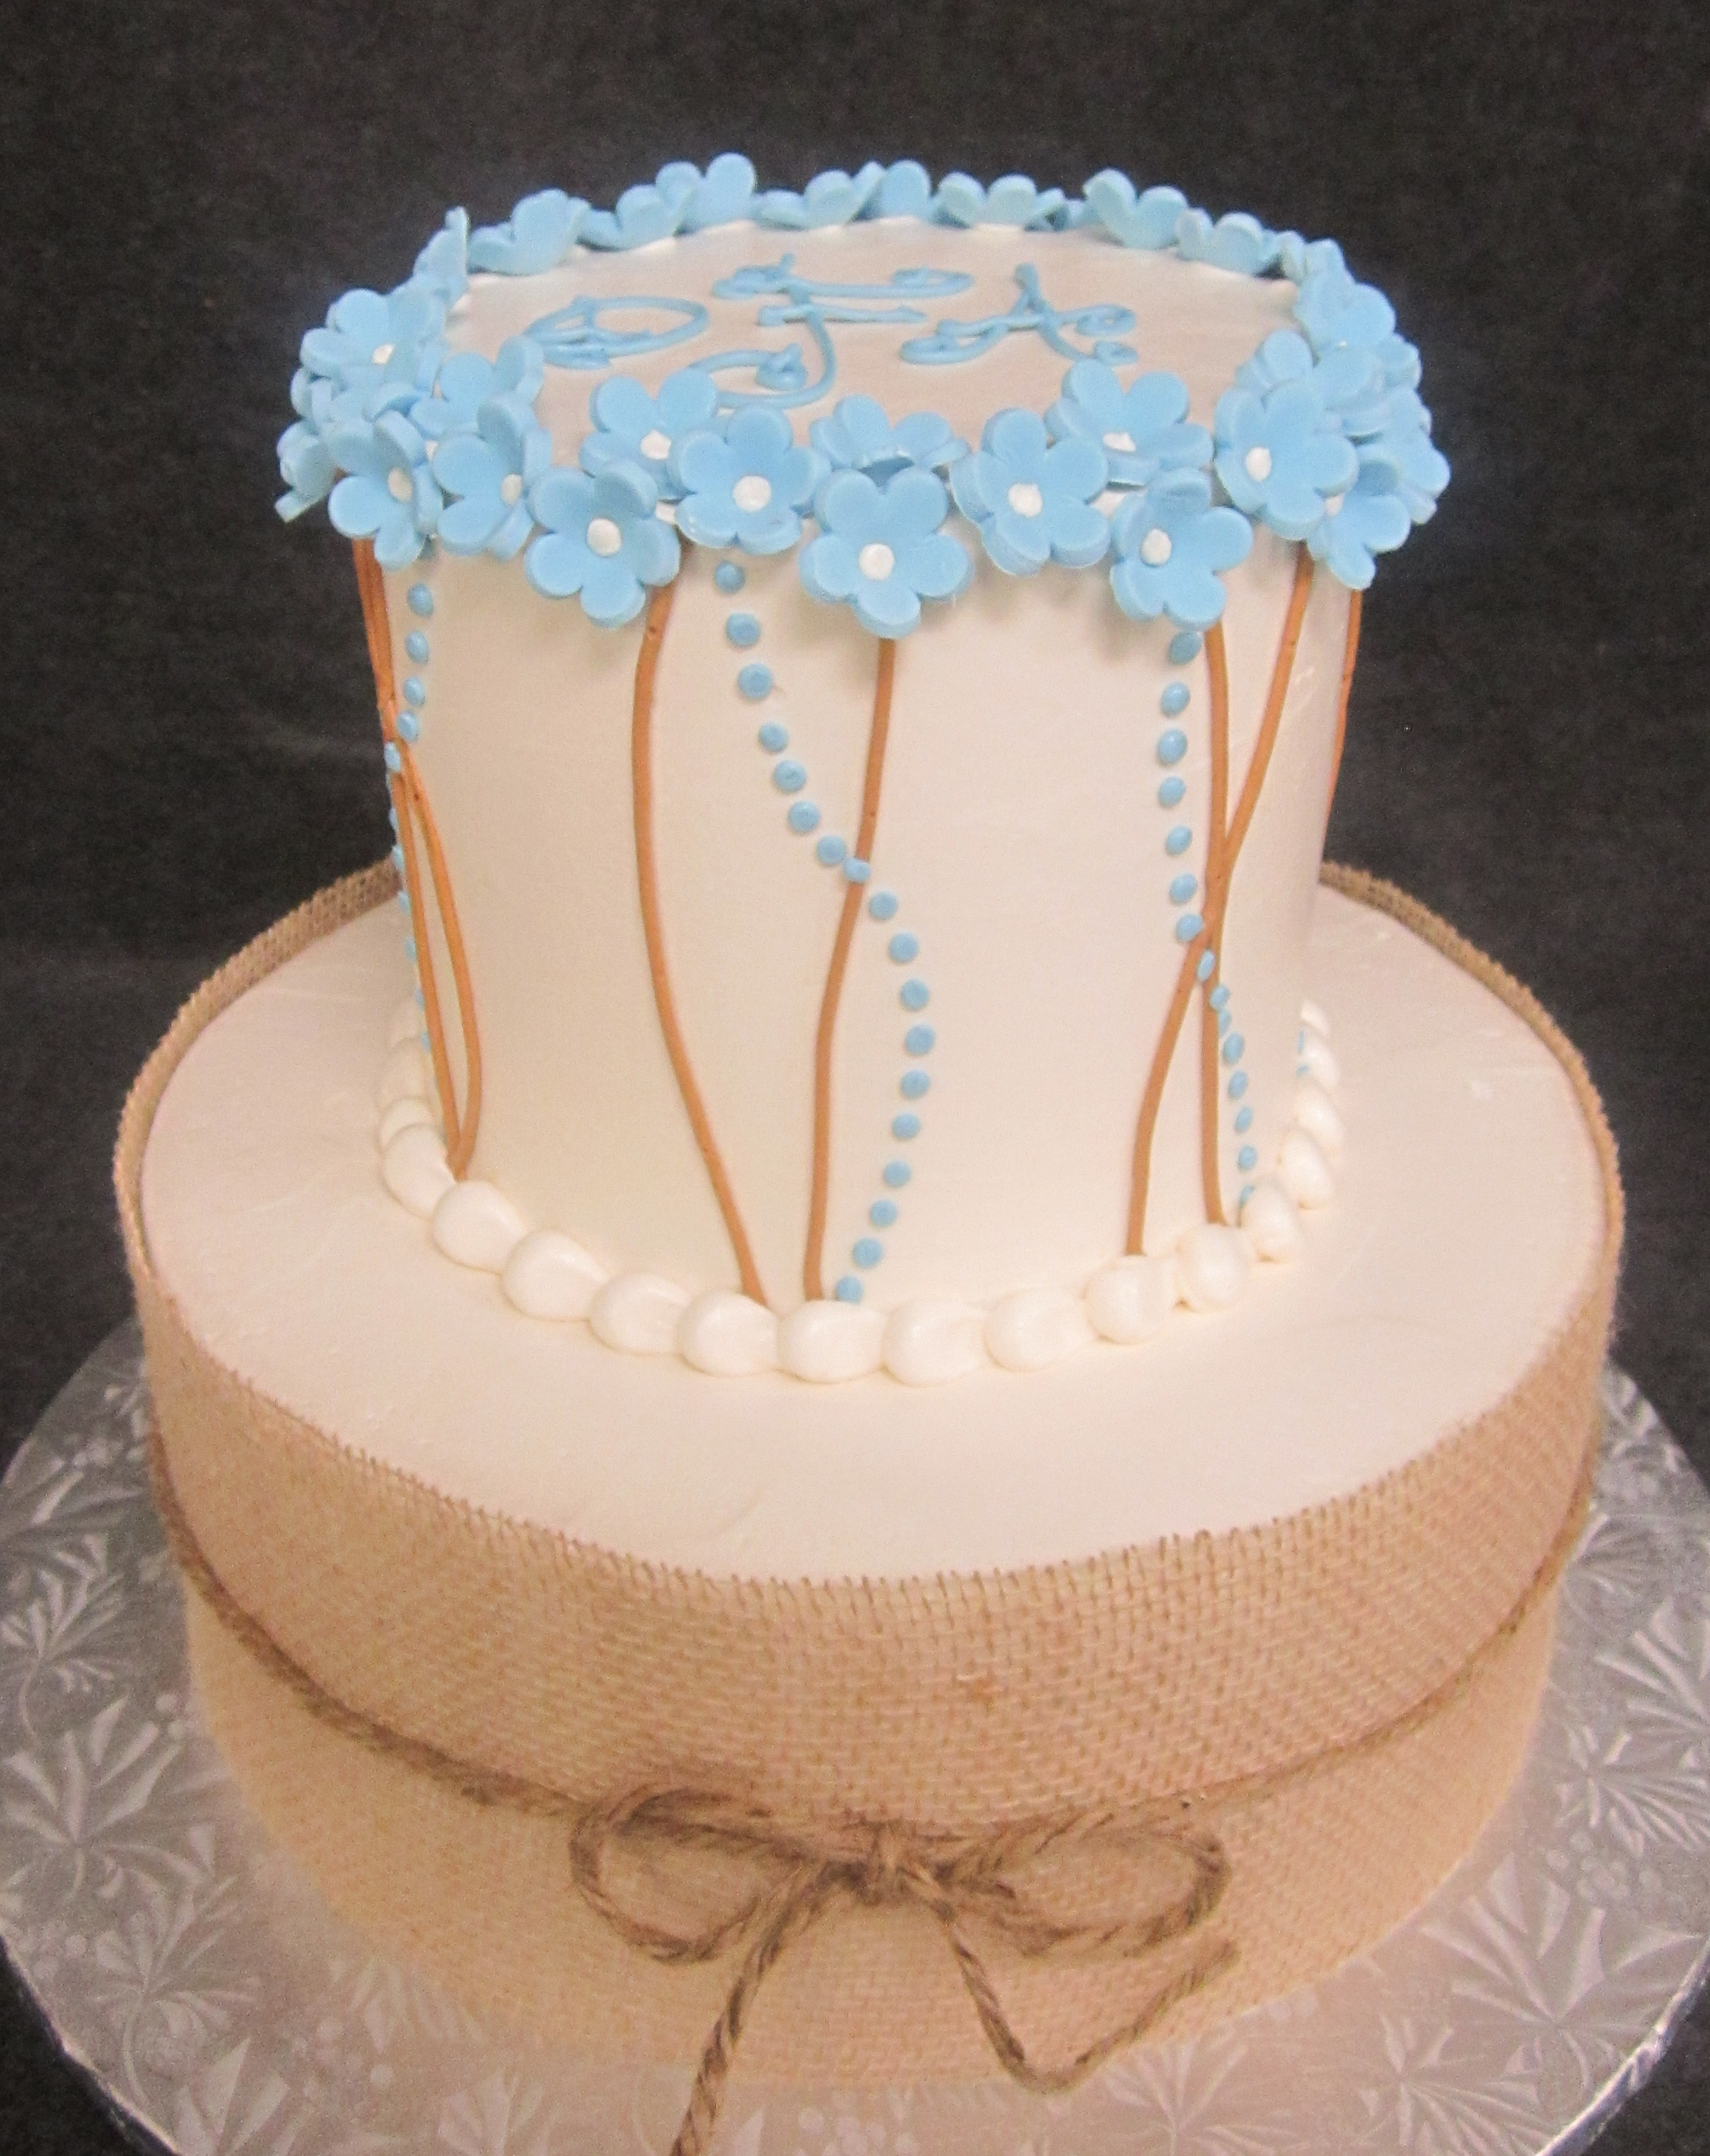 lt blue flowers and vines with burlap 2 tier.jpg